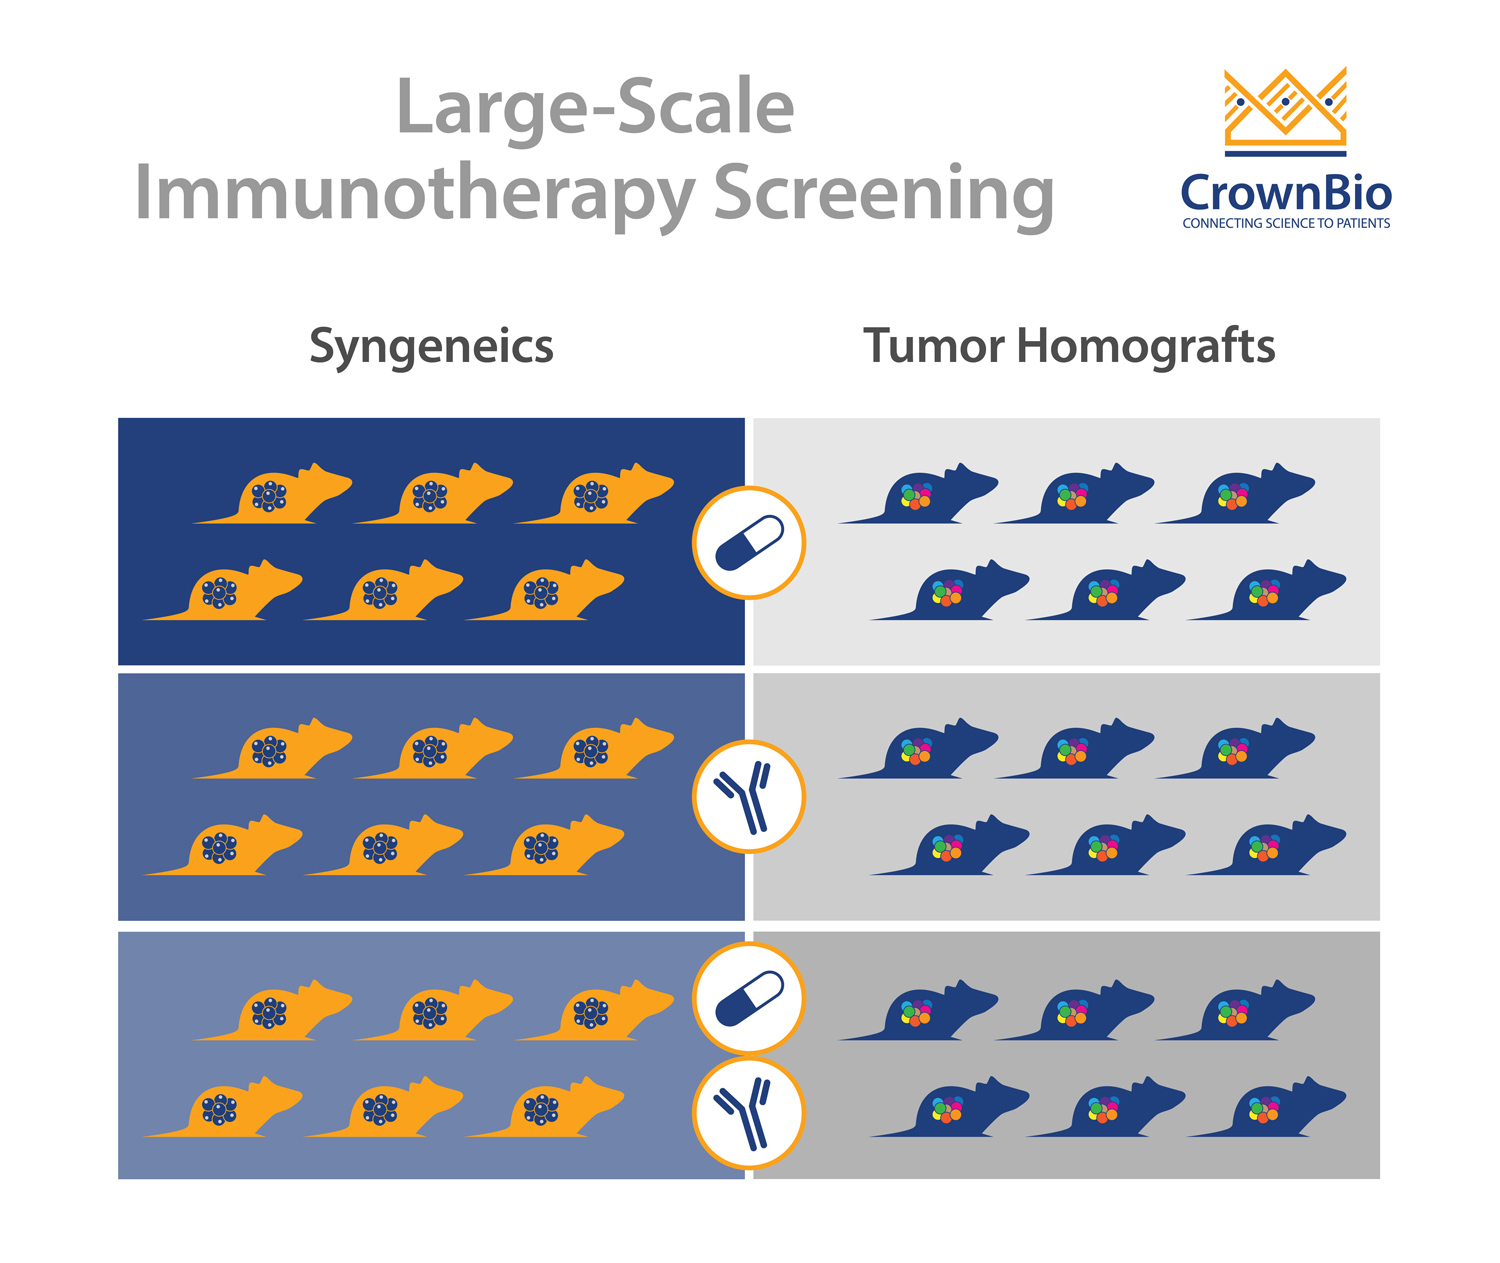 Large-Scale Immunotherapy Screening: How and Why?